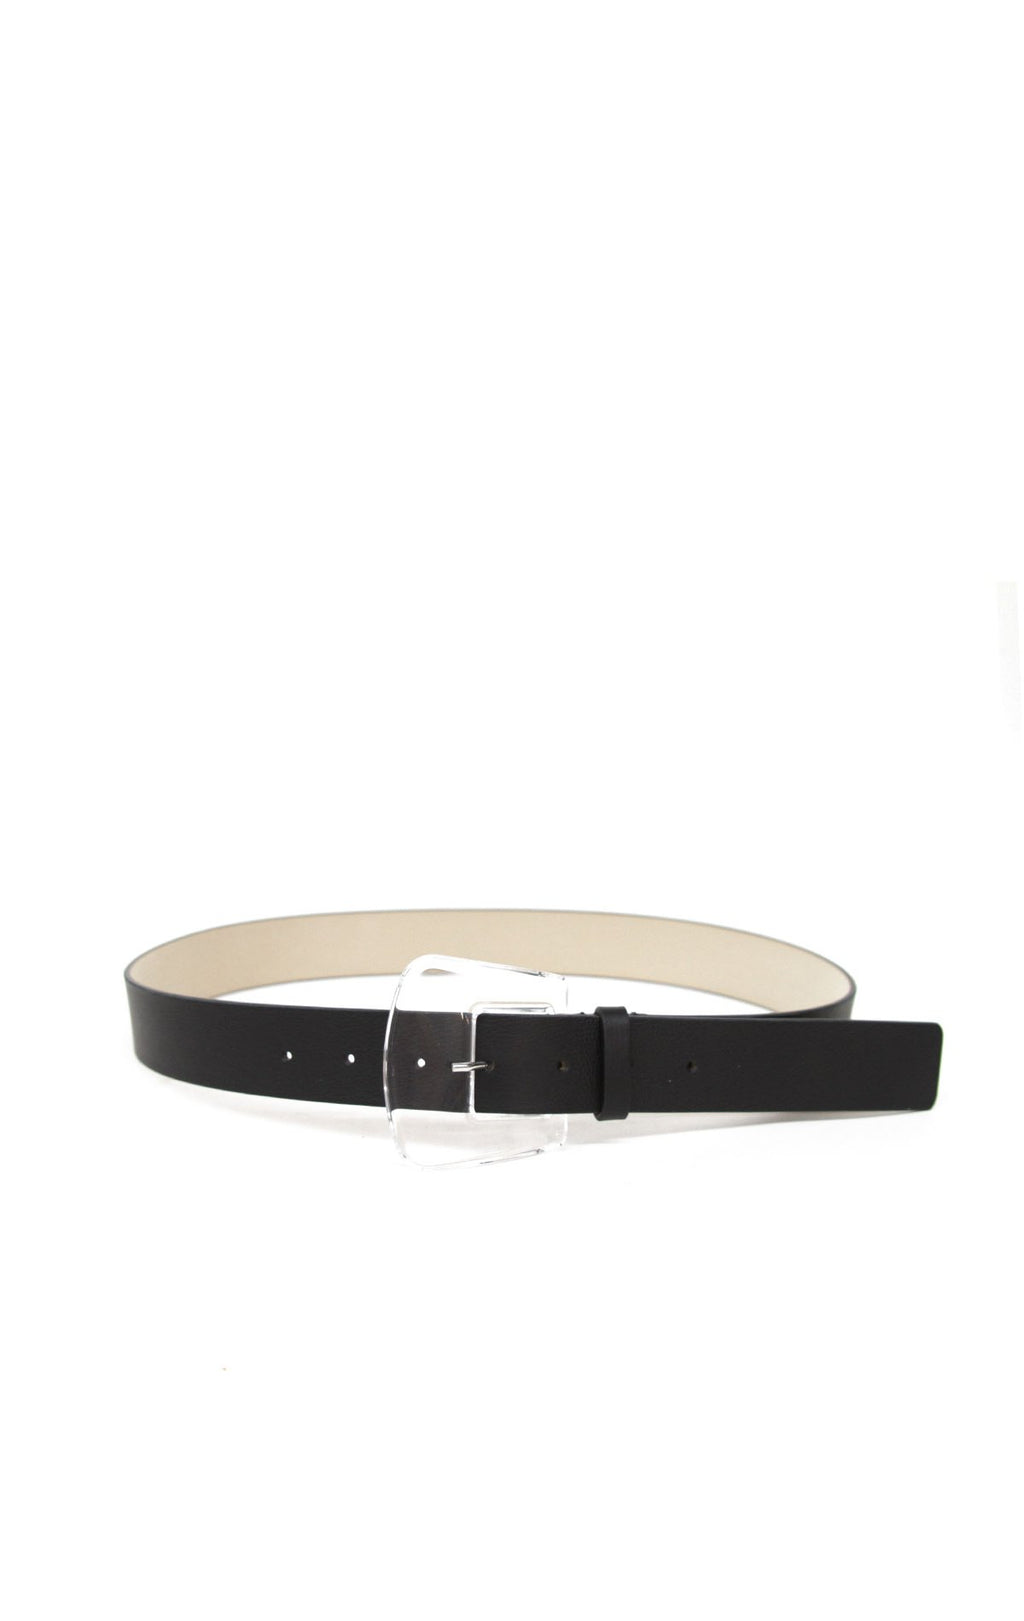 Carmar Denim: B-LOW THE BELT CECE HIP BELT - BELT